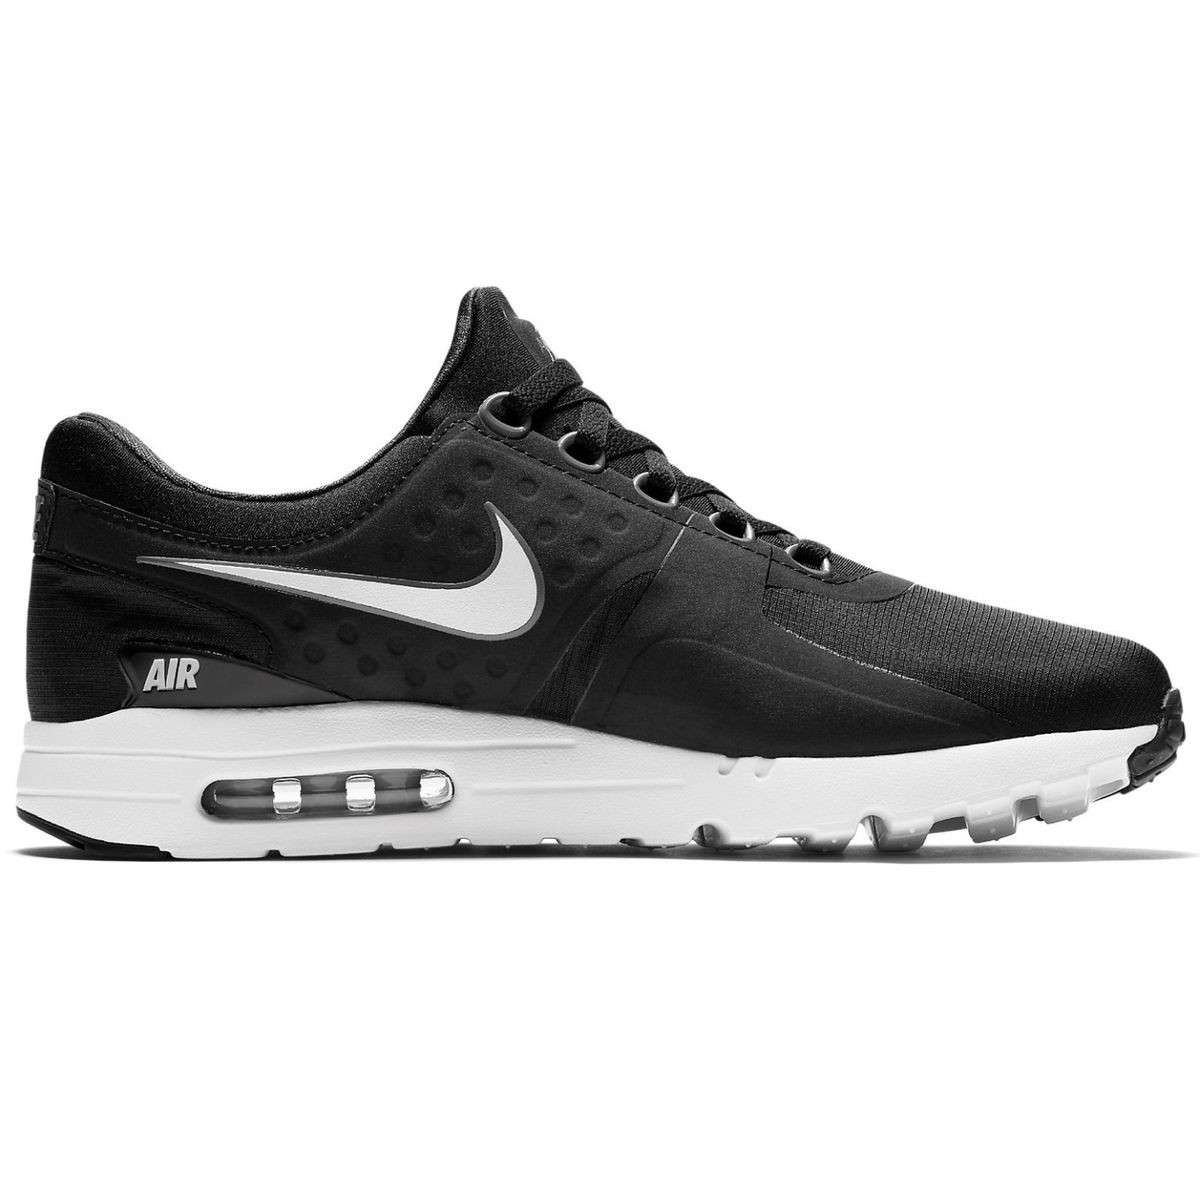 Res Les Plus Abordables Nike Air Max Zero | Chaussure Nike